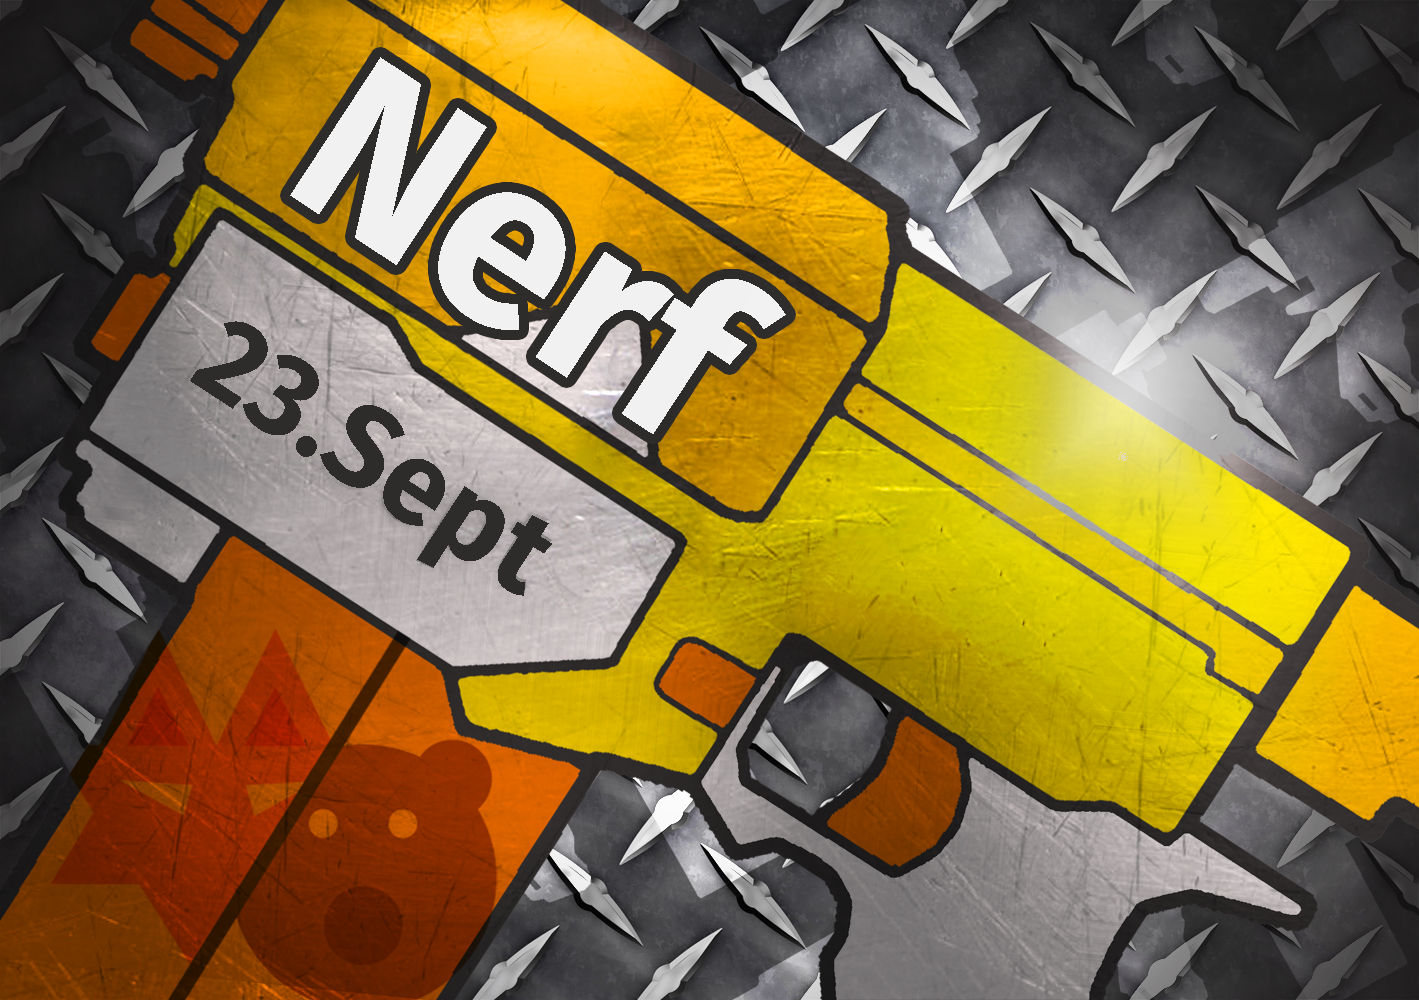 Nerfevent 23. September 2017